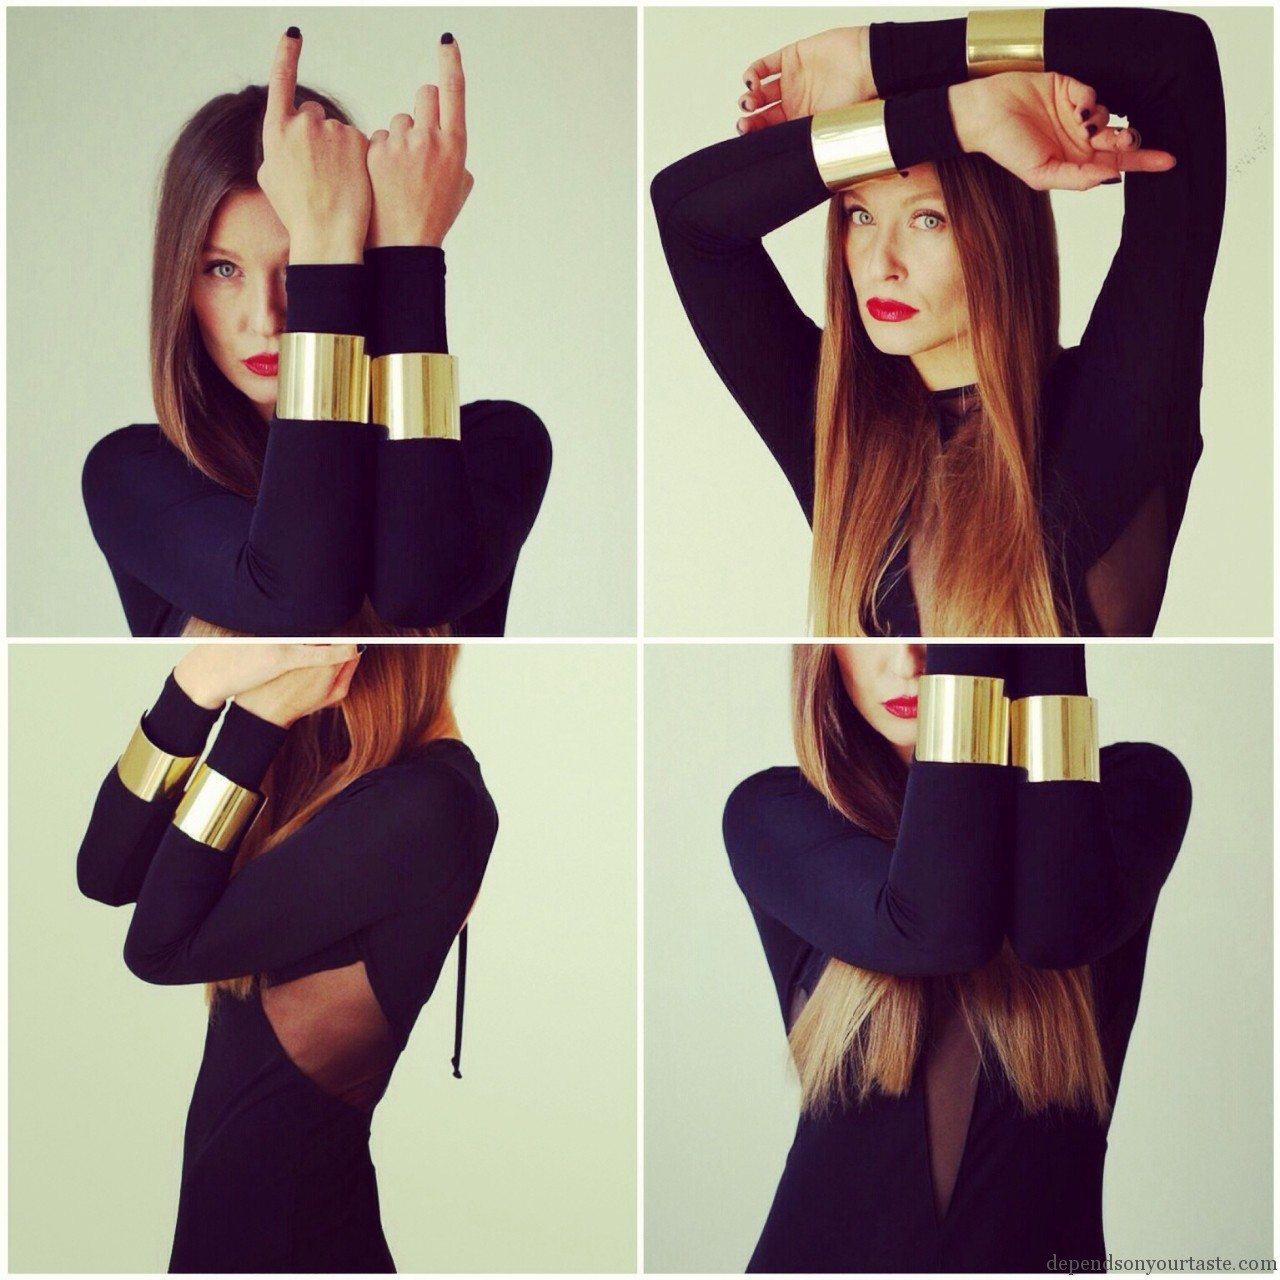 red lips ysl, black evening maxi dress, styling wioletta walas , photography aga biegluk, tom ford dress ,daft punk fashion, vogue inspiration, asos gold cuff bangles, hm long black maxi dress